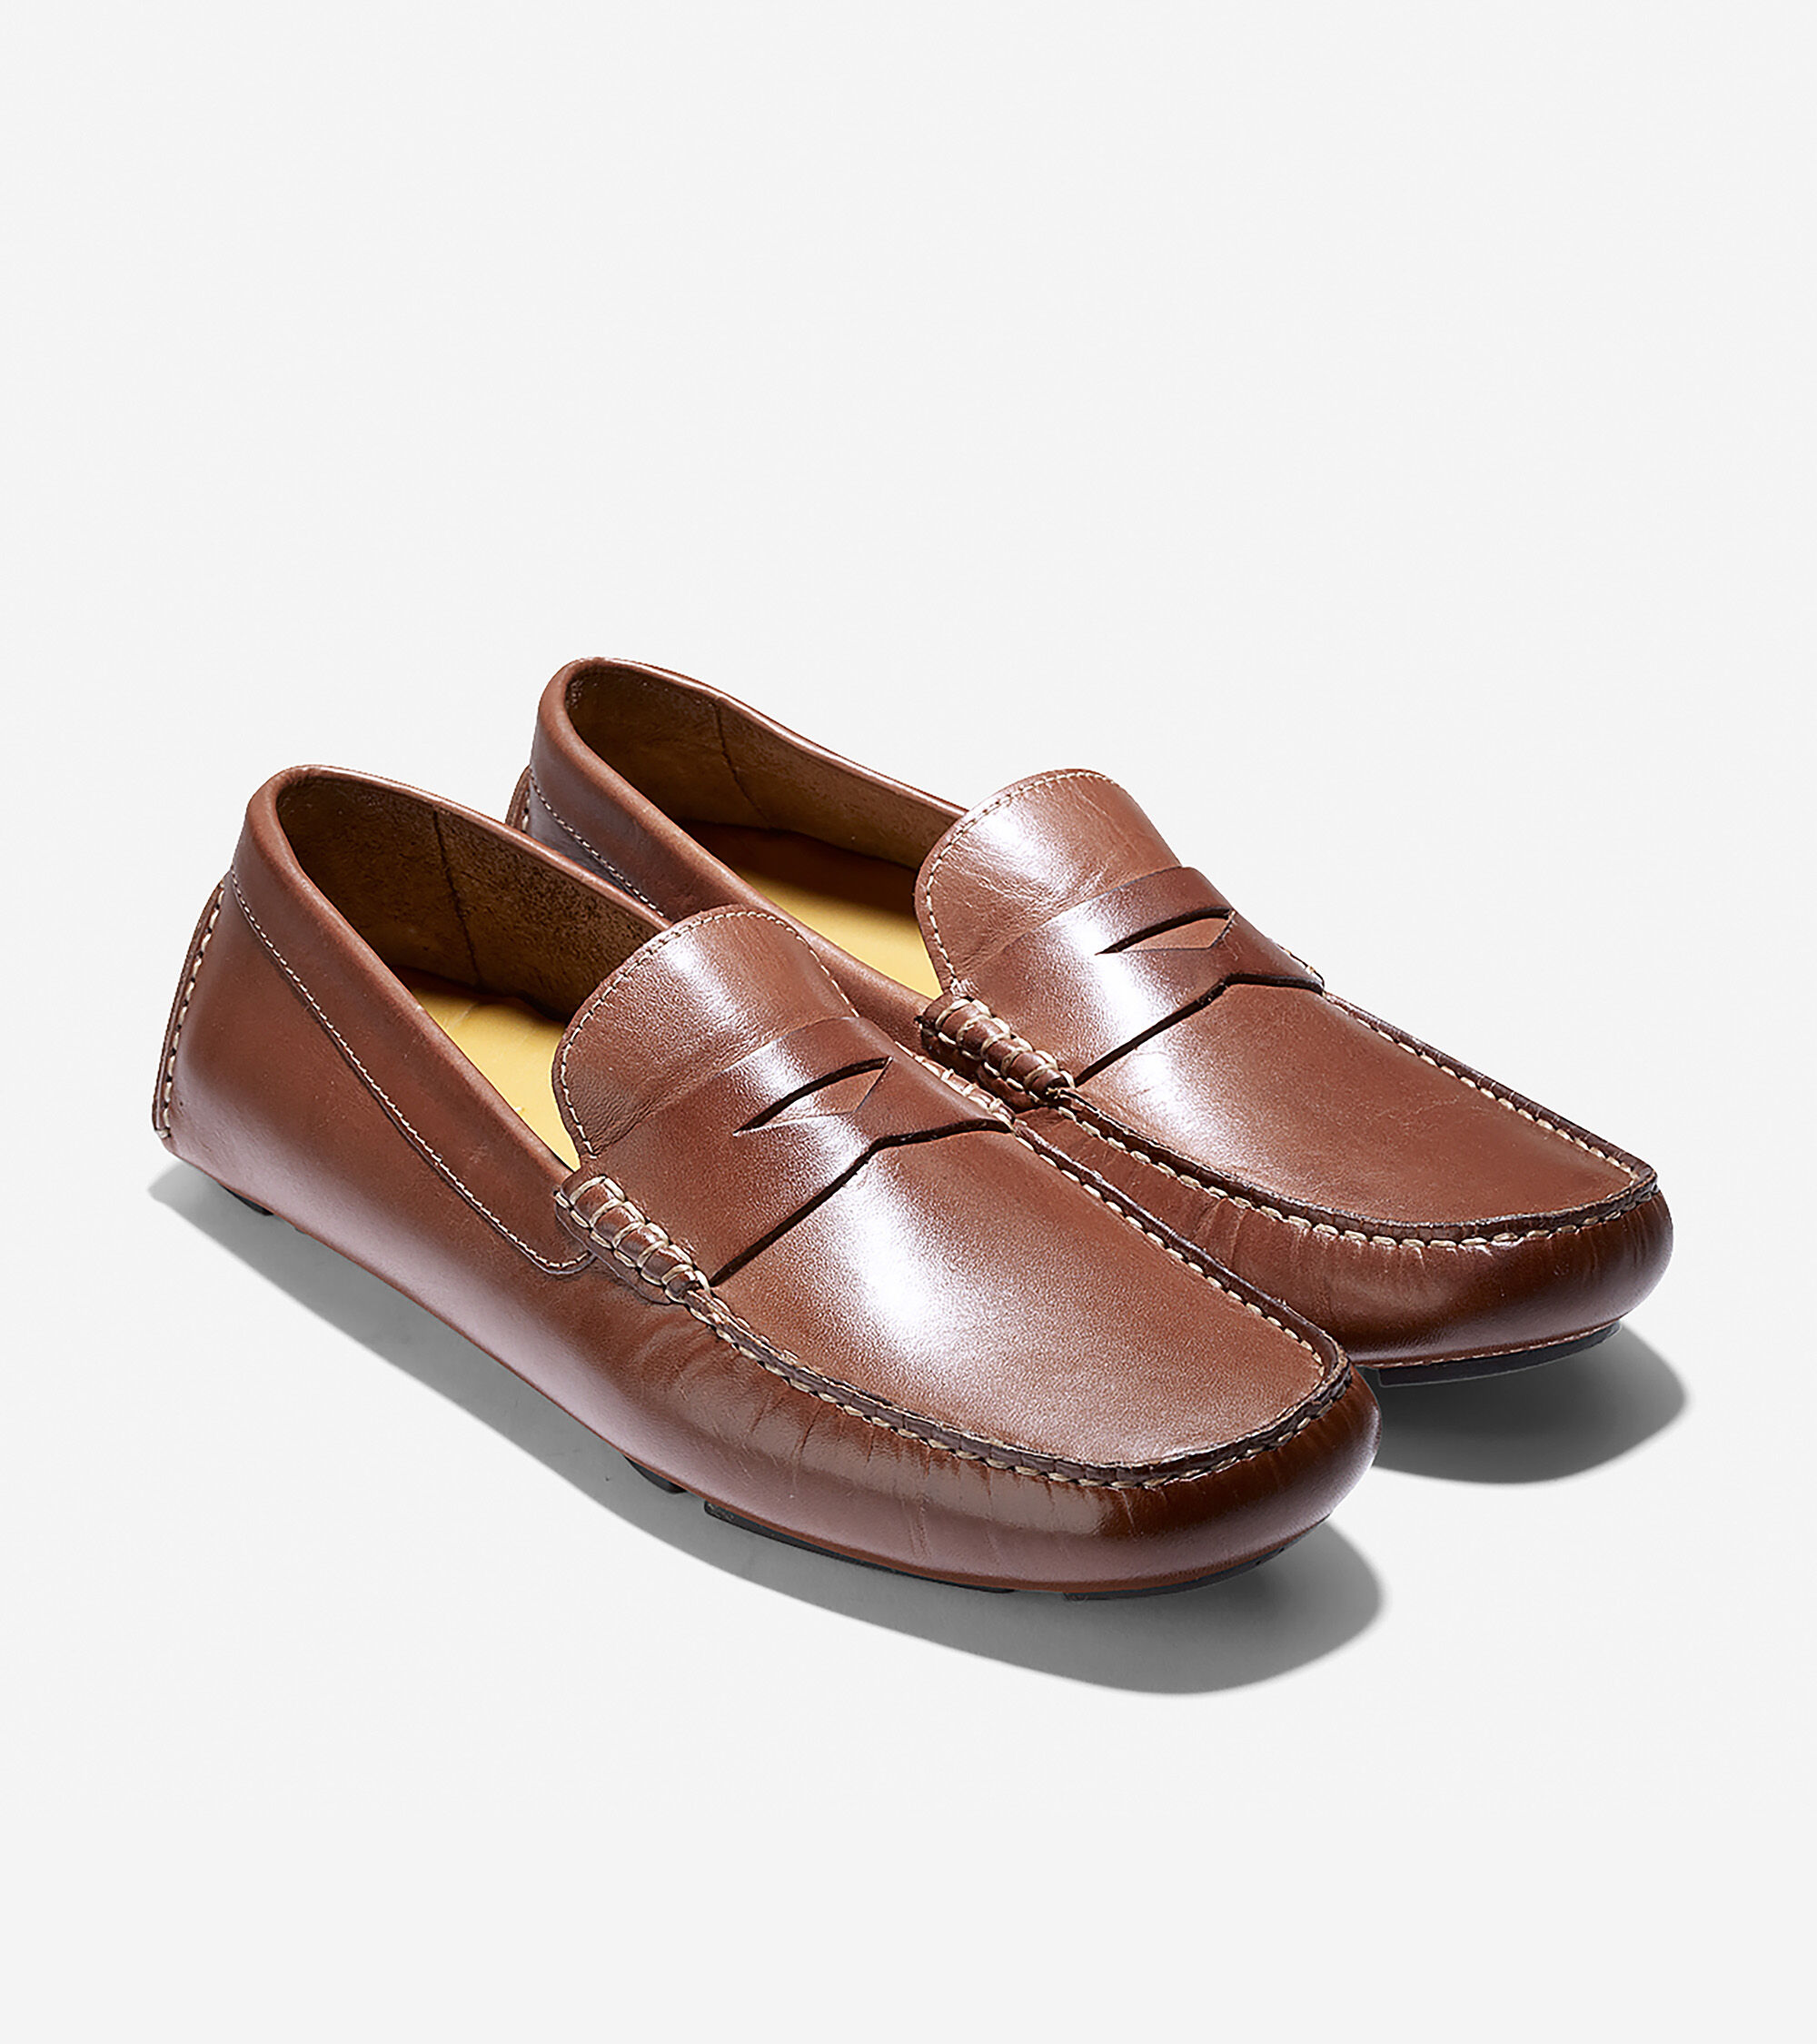 Howland Penny Loafer in Saddle Tan